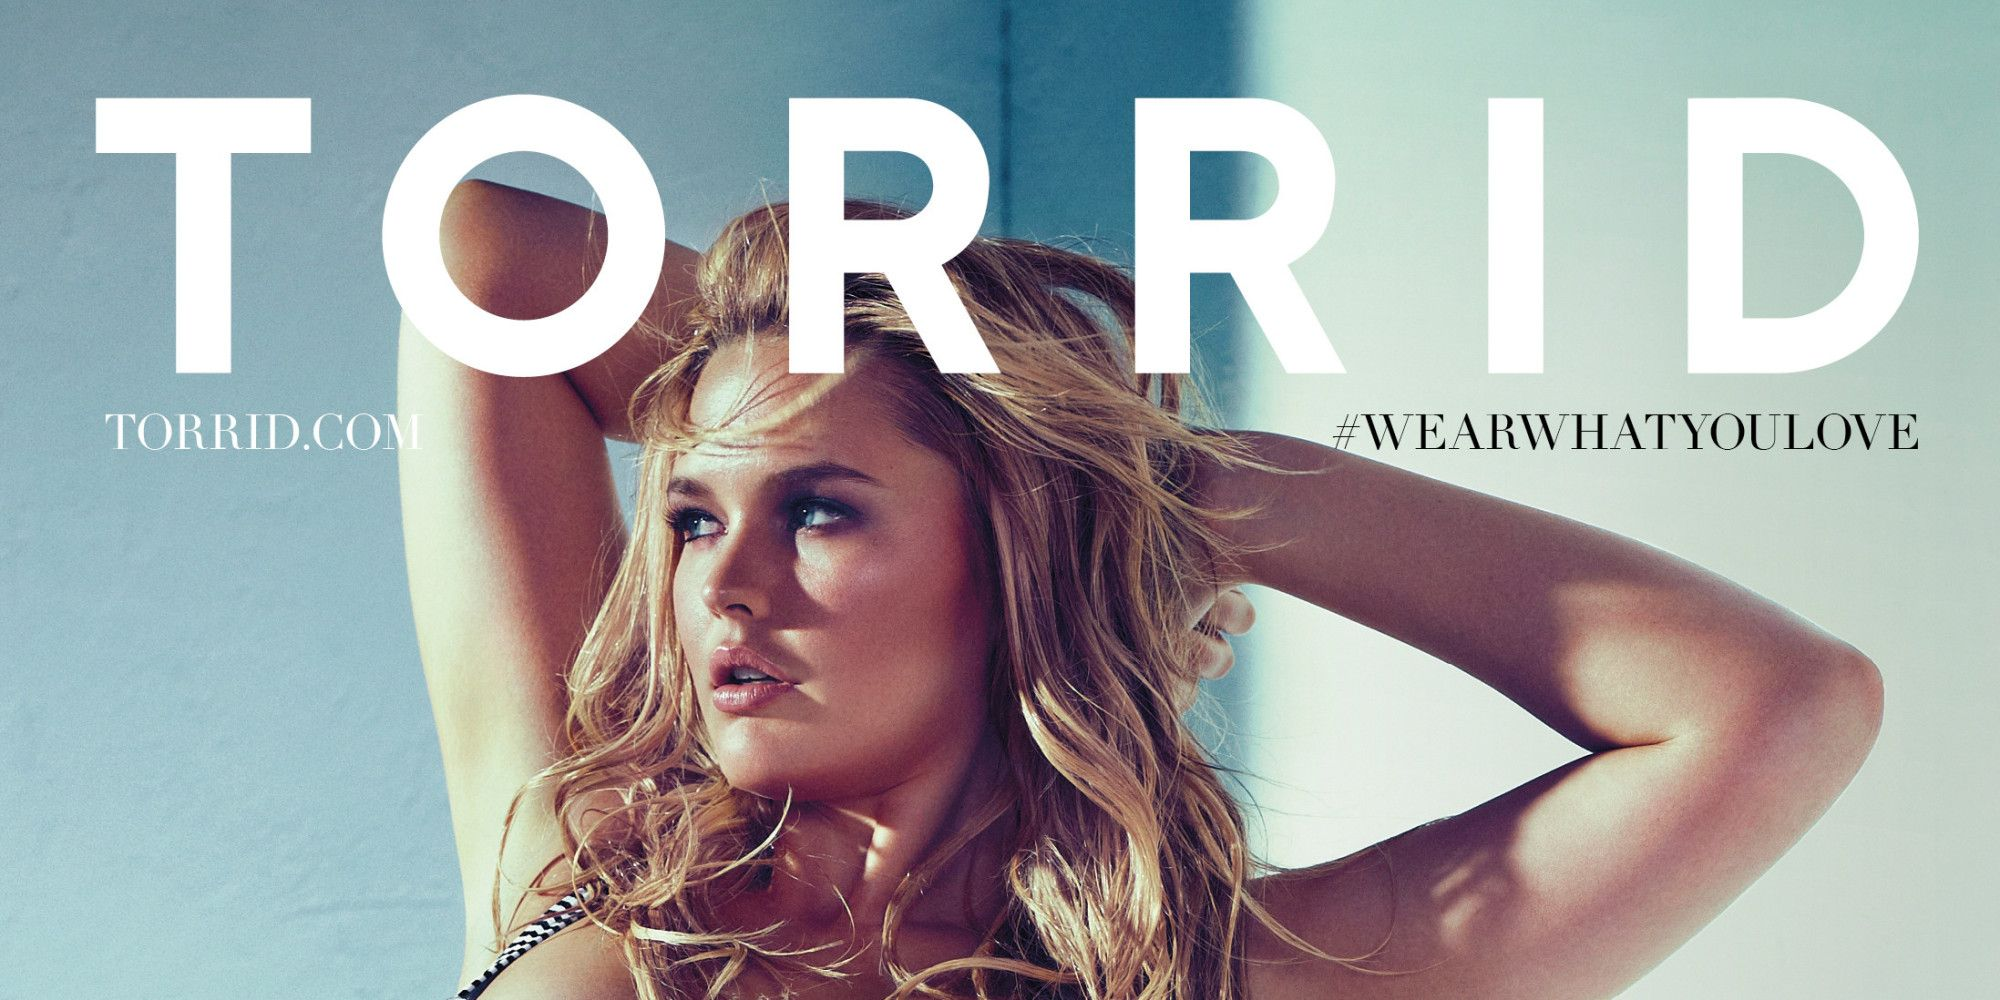 Torrid Clothing Store to Win Validation Code